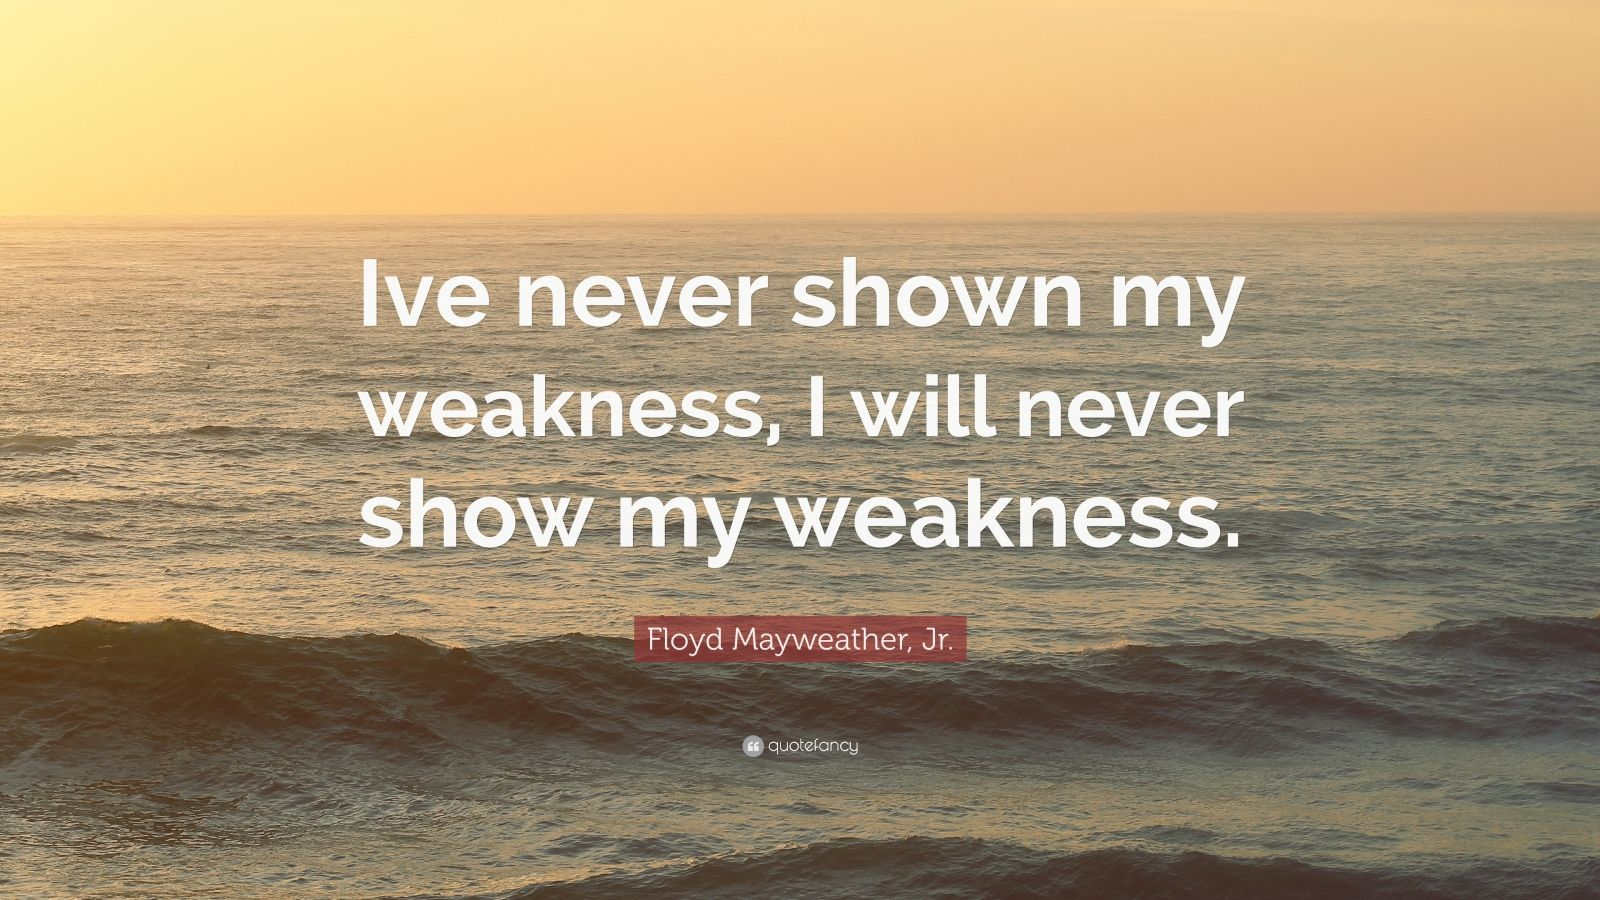 """Floyd Mayweather, Jr. Quote: """"Ive never shown my weakness, I will never show my weakness."""""""